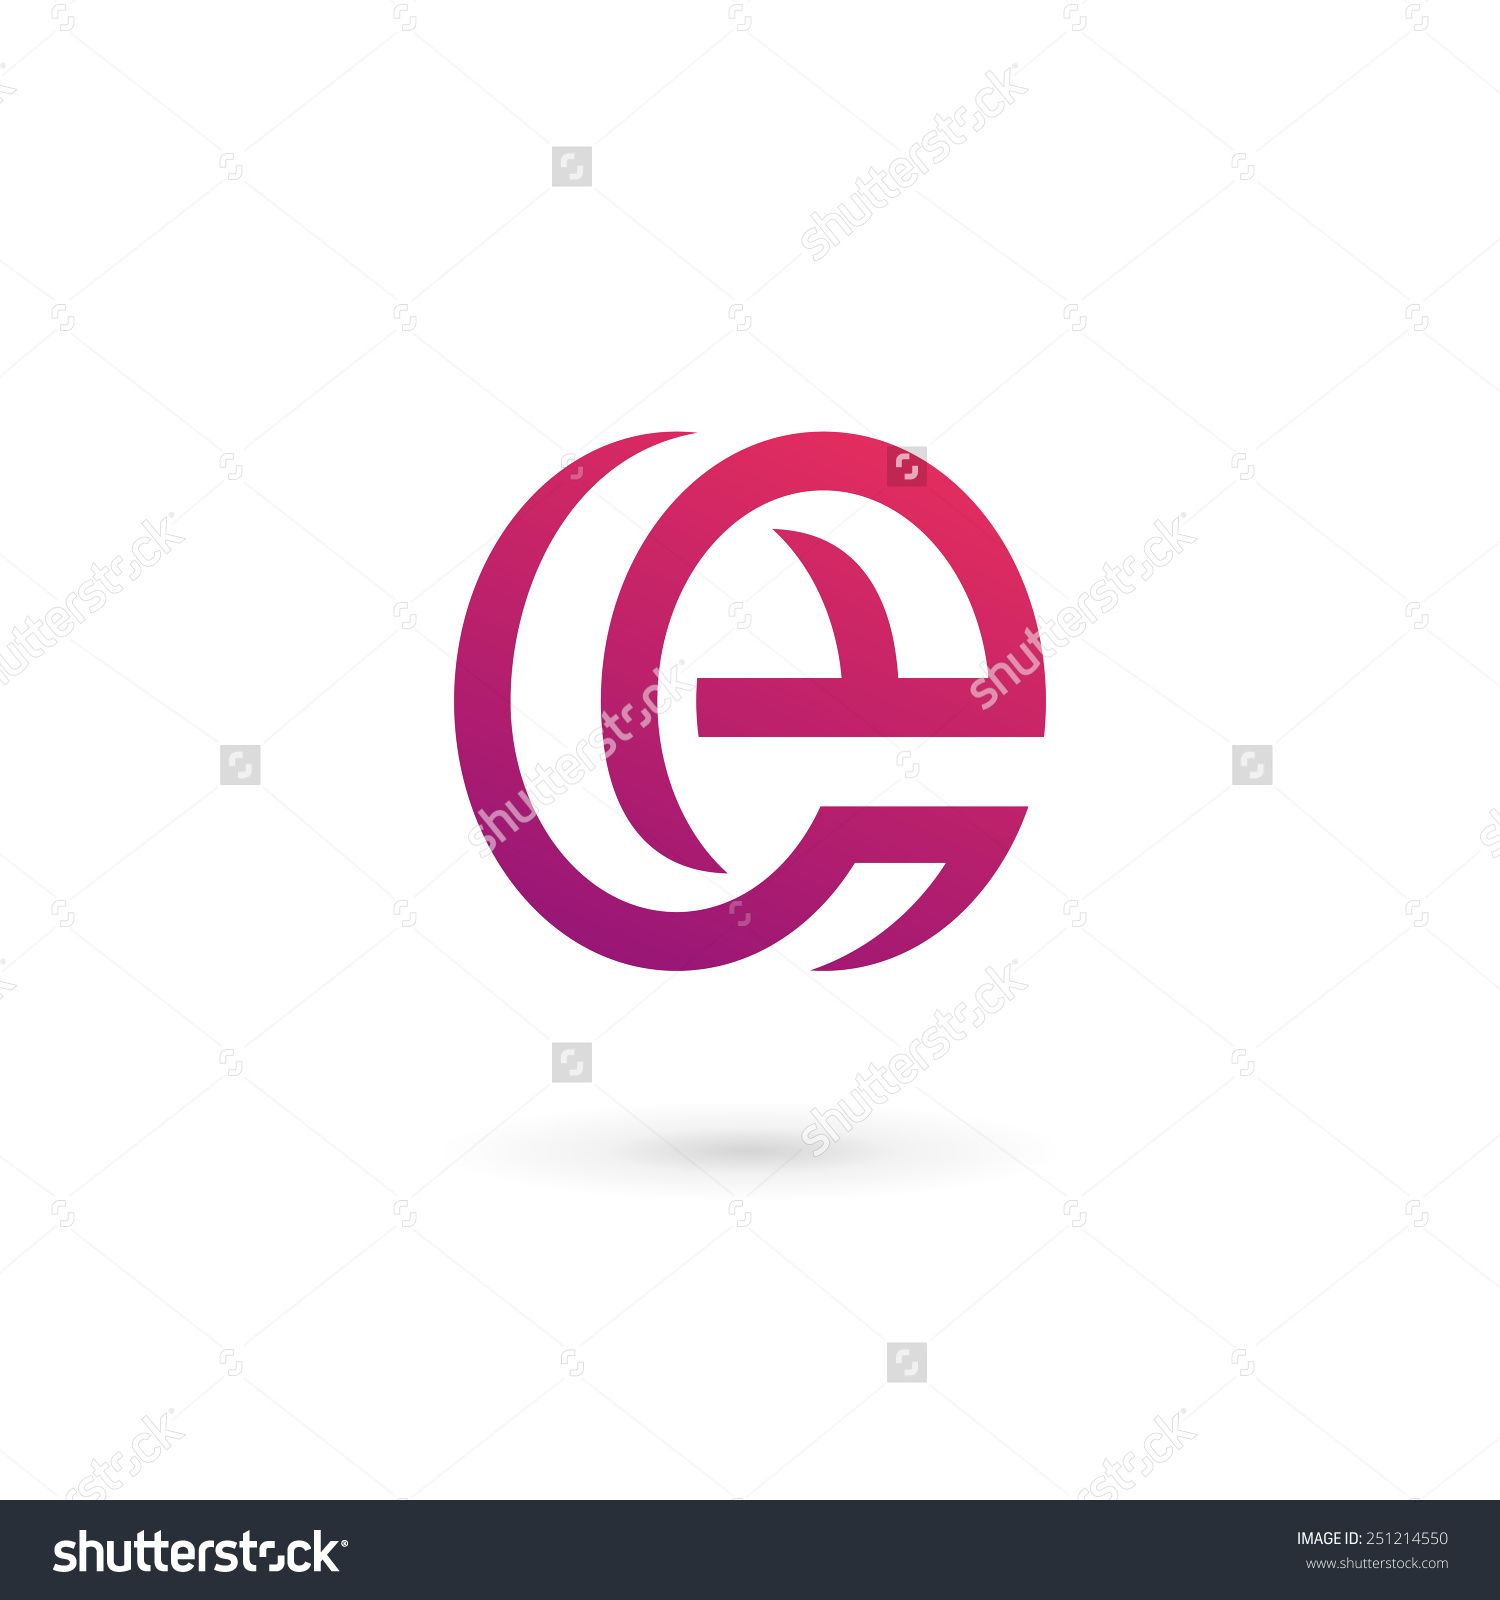 Letter E logo icon design template elements Preview. Save ...